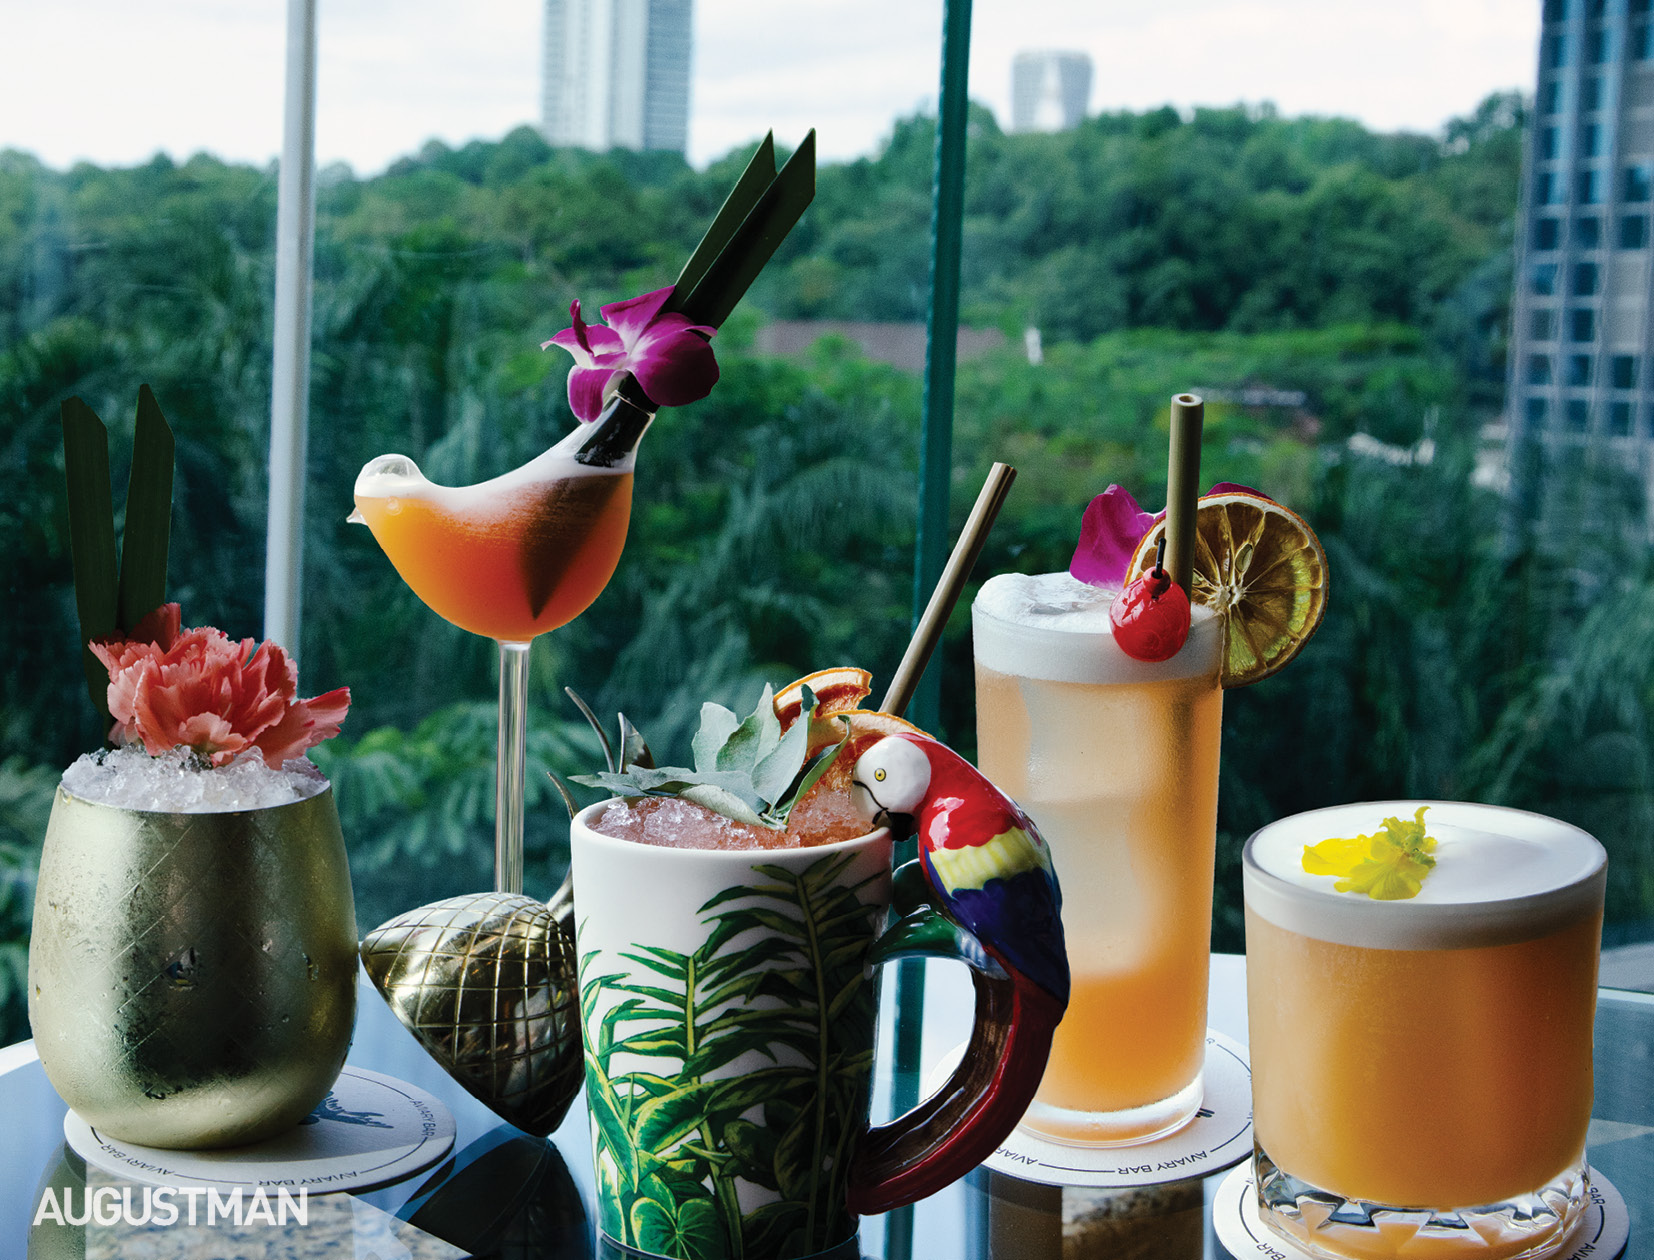 Hilton KL's Iconic Jungle Bird Spreads Wings with Expansive Menu